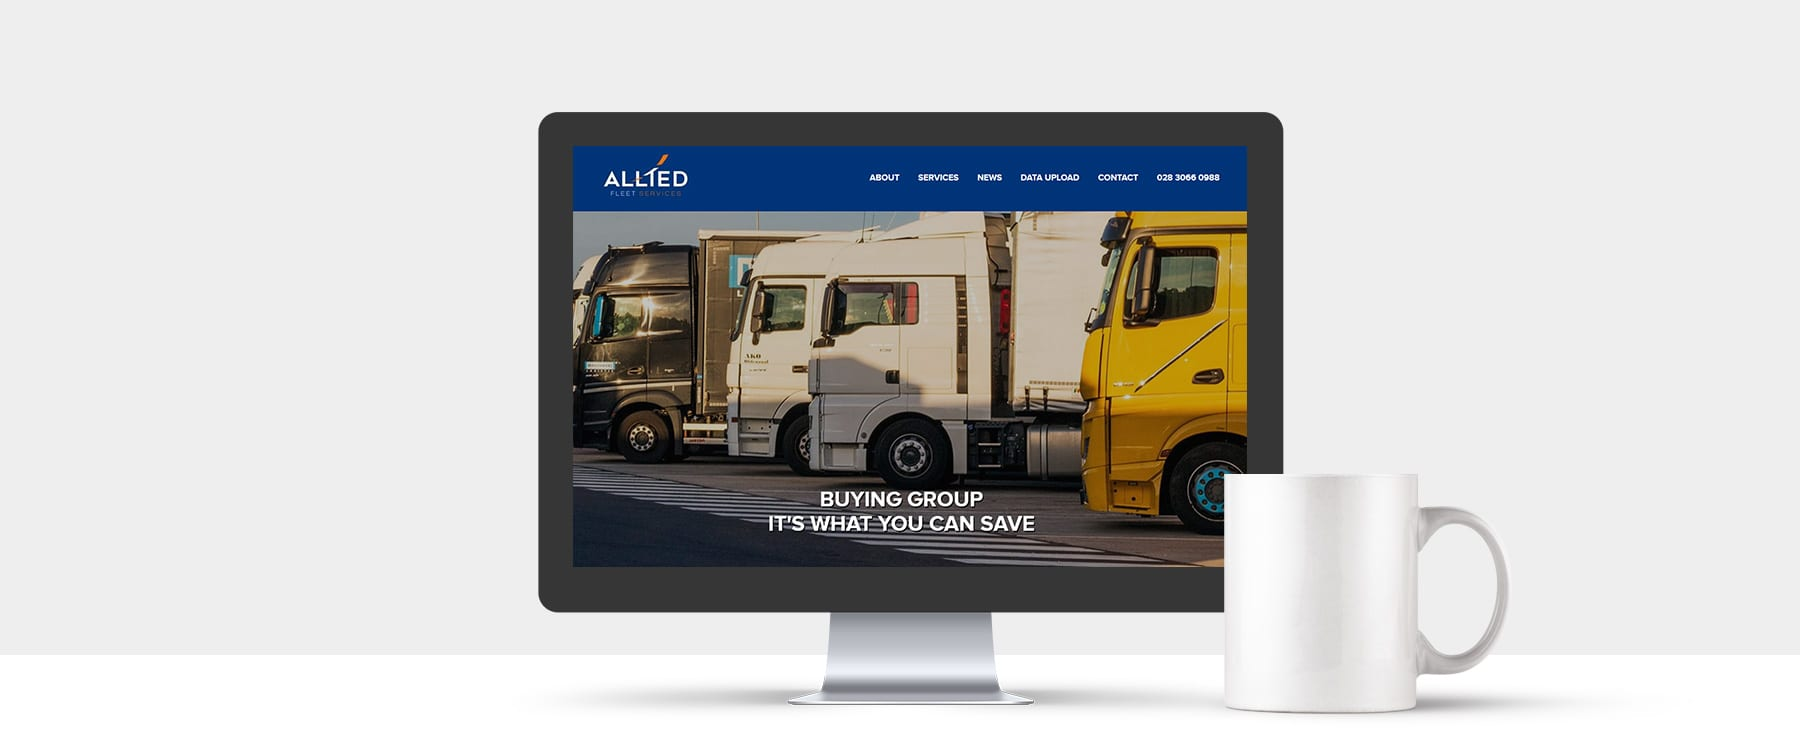 New Website Launch for County Armagh Company, Allied Fleet Services Image